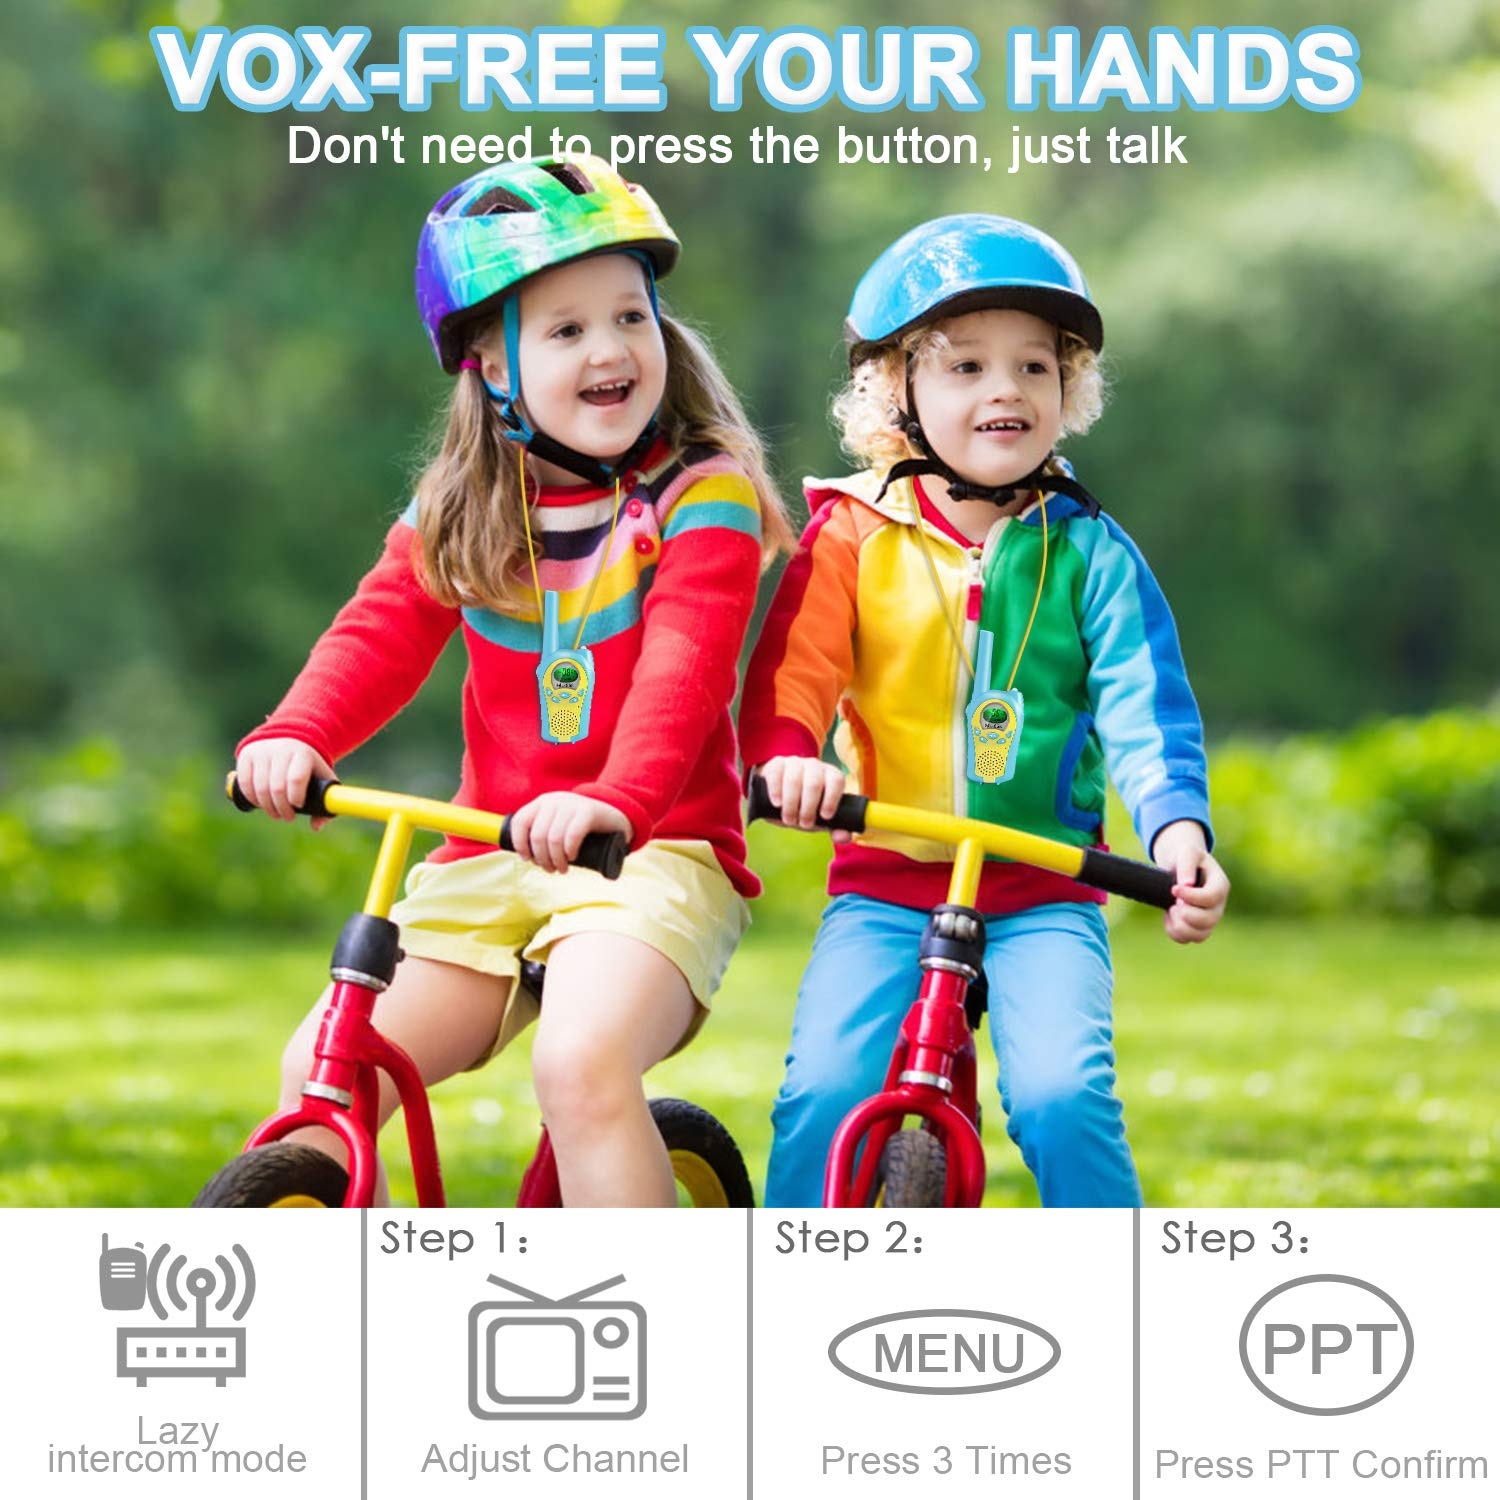 ShinePick 2 Pack Walkie Talkies for Kids 22 Channels 2 Way Radio Toy 3 Mile Long Range Handheld Talkies with Backlit LCD Built-in Flashlight for Outdoor Adventures Camping Hiking